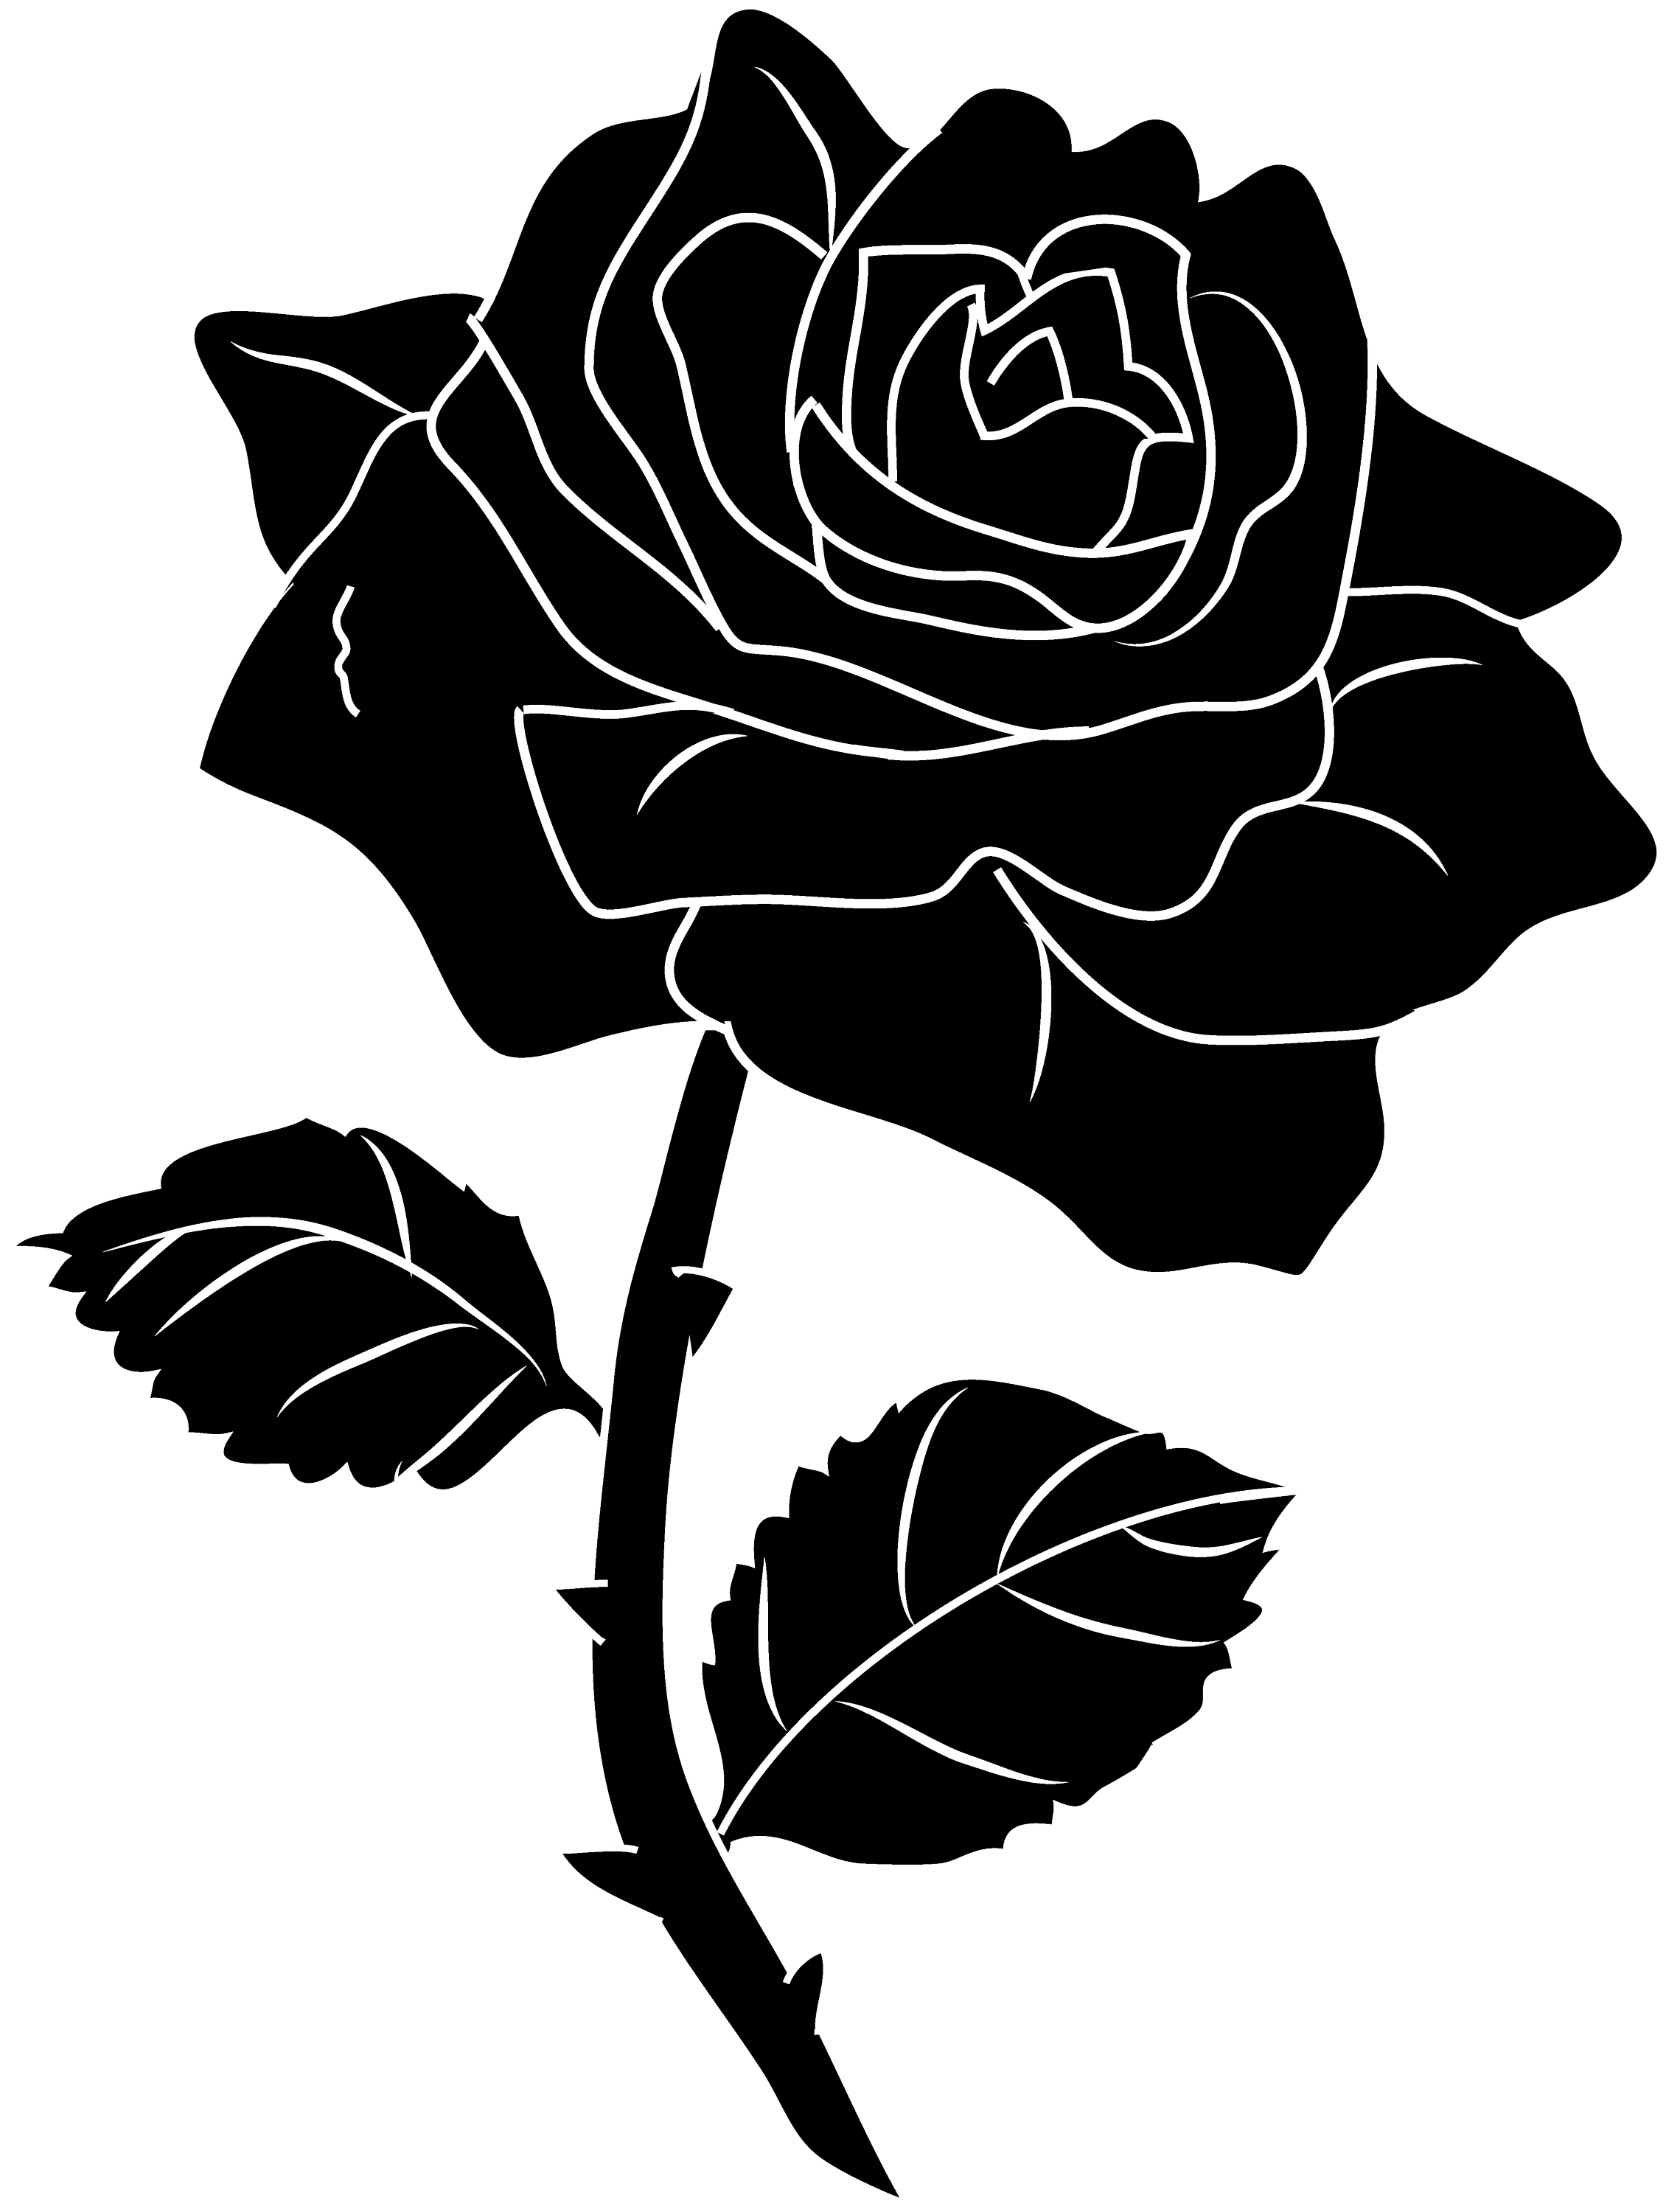 clipart roses black and white - photo #38